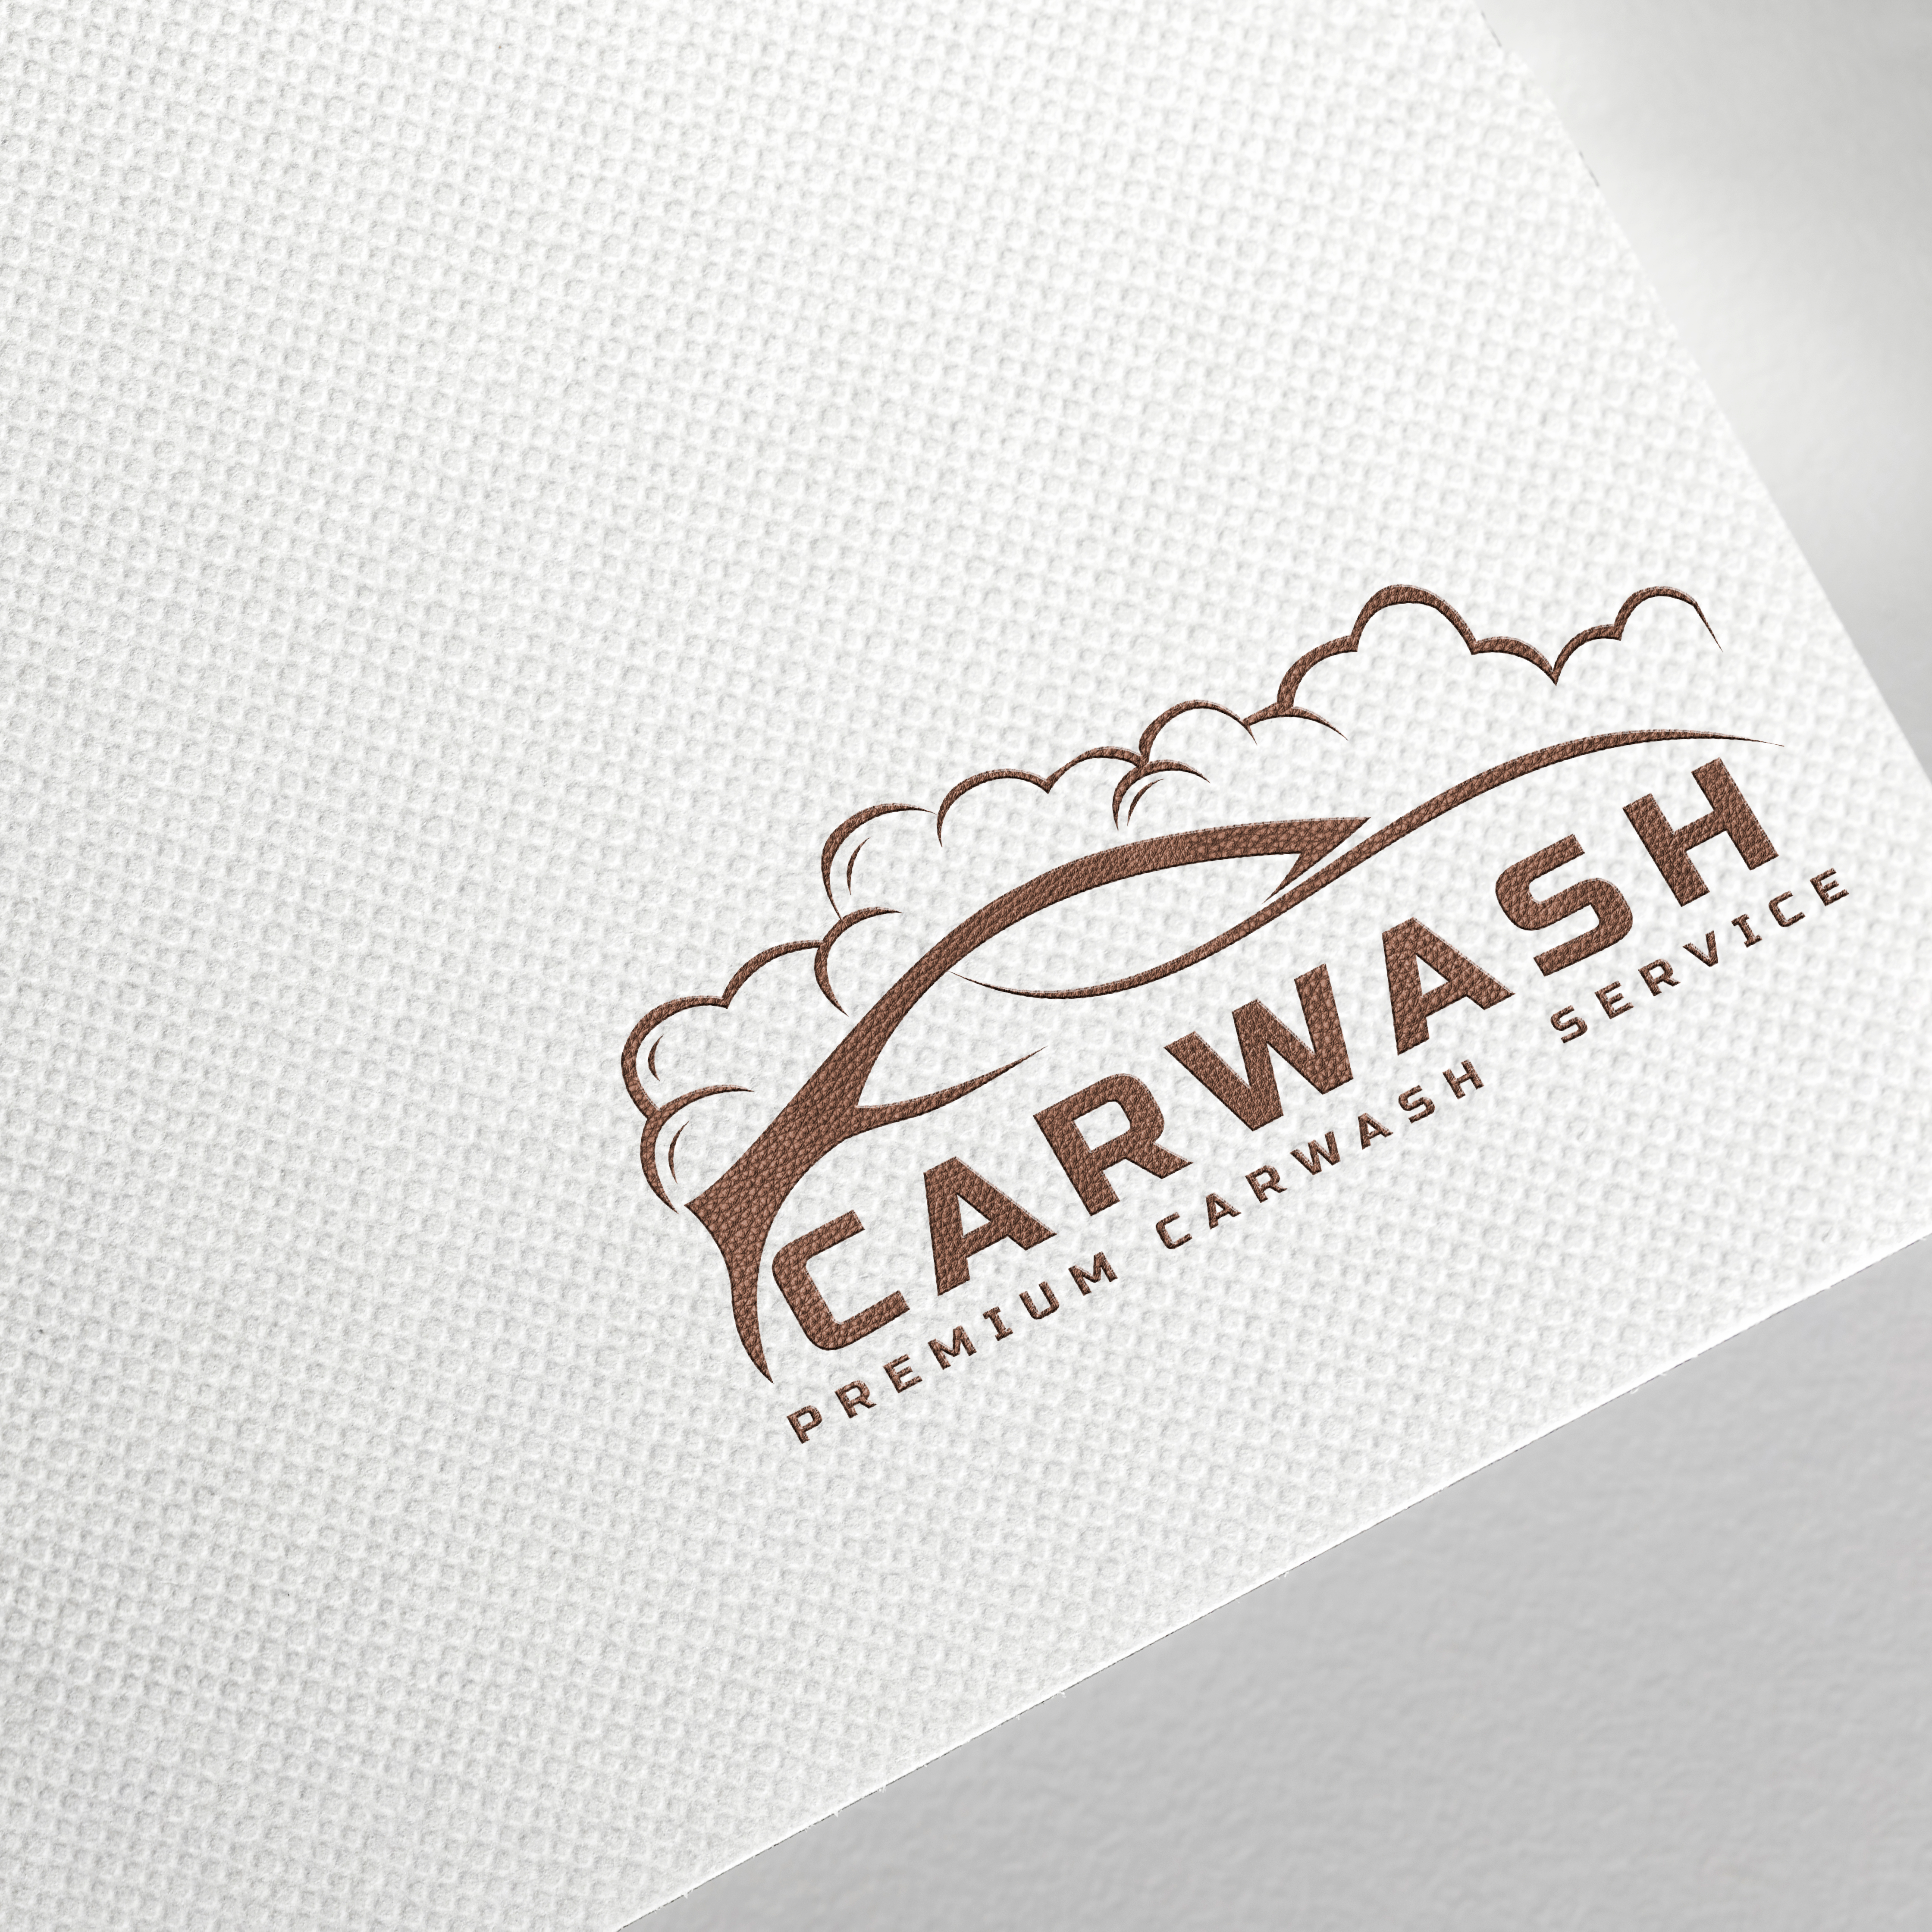 I create professional logo design